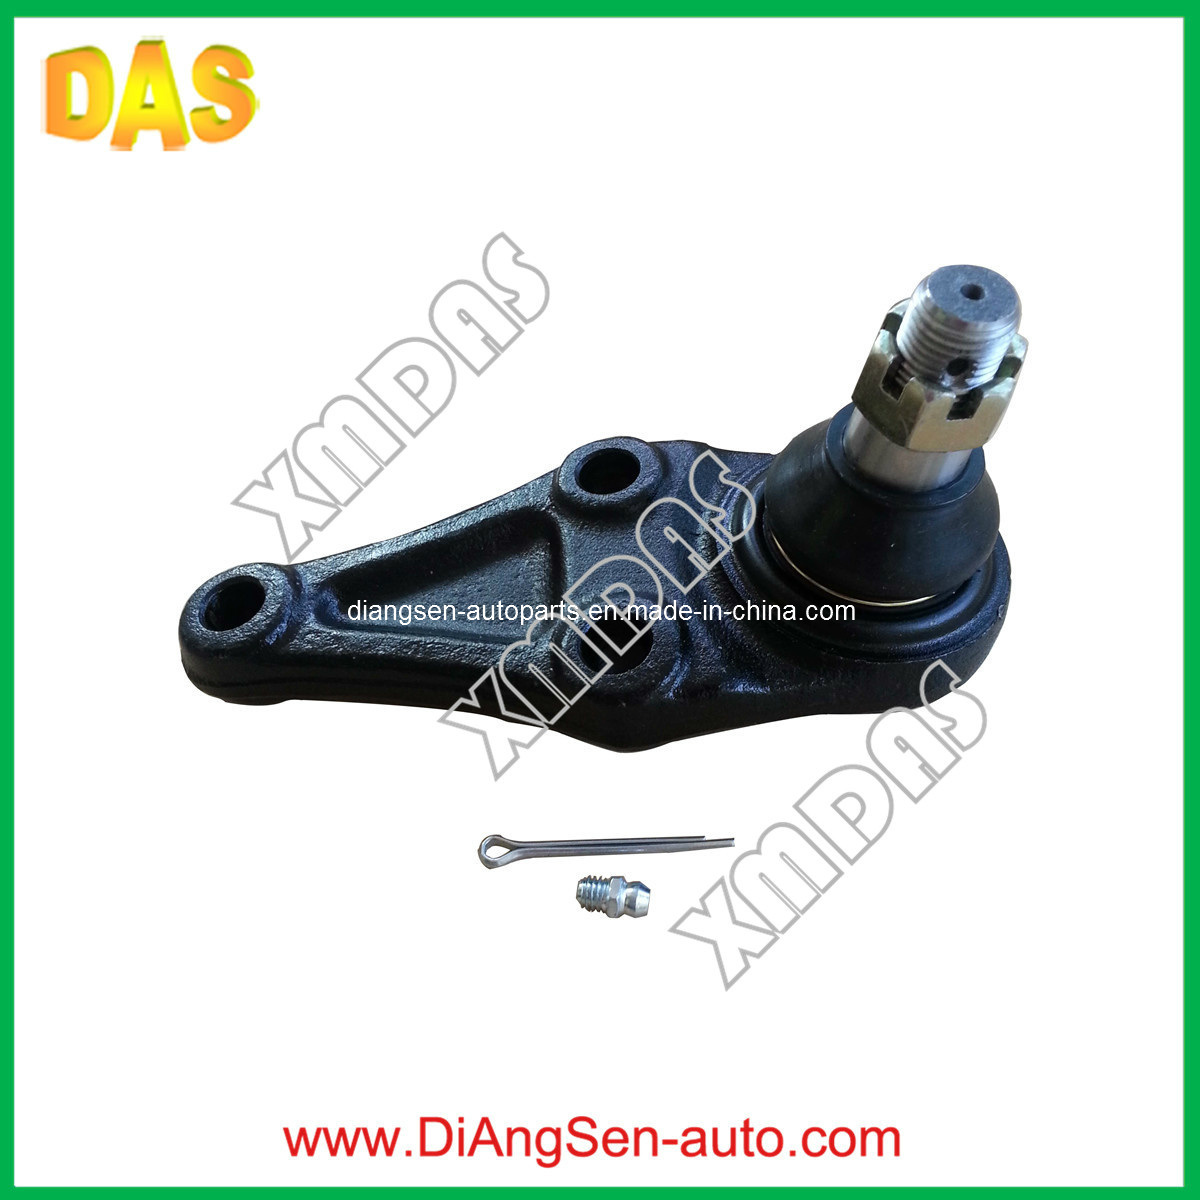 Top Quality Lower Ball Joint for Mitsubishi Pajero Mr496799